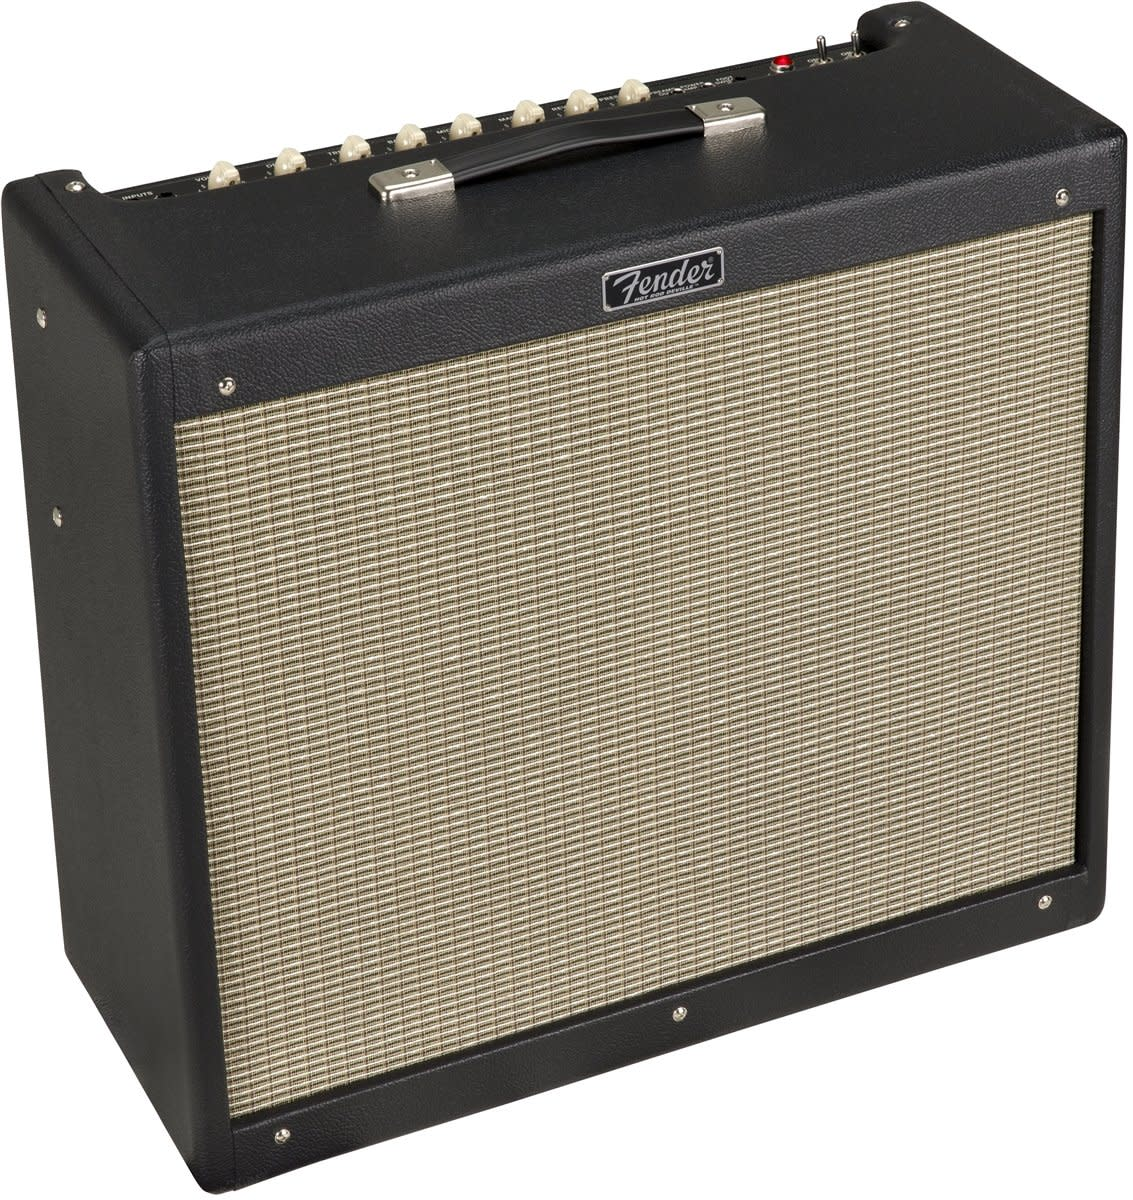 The Hot Rod DeVille sounds amazing and has plenty of power to spare.